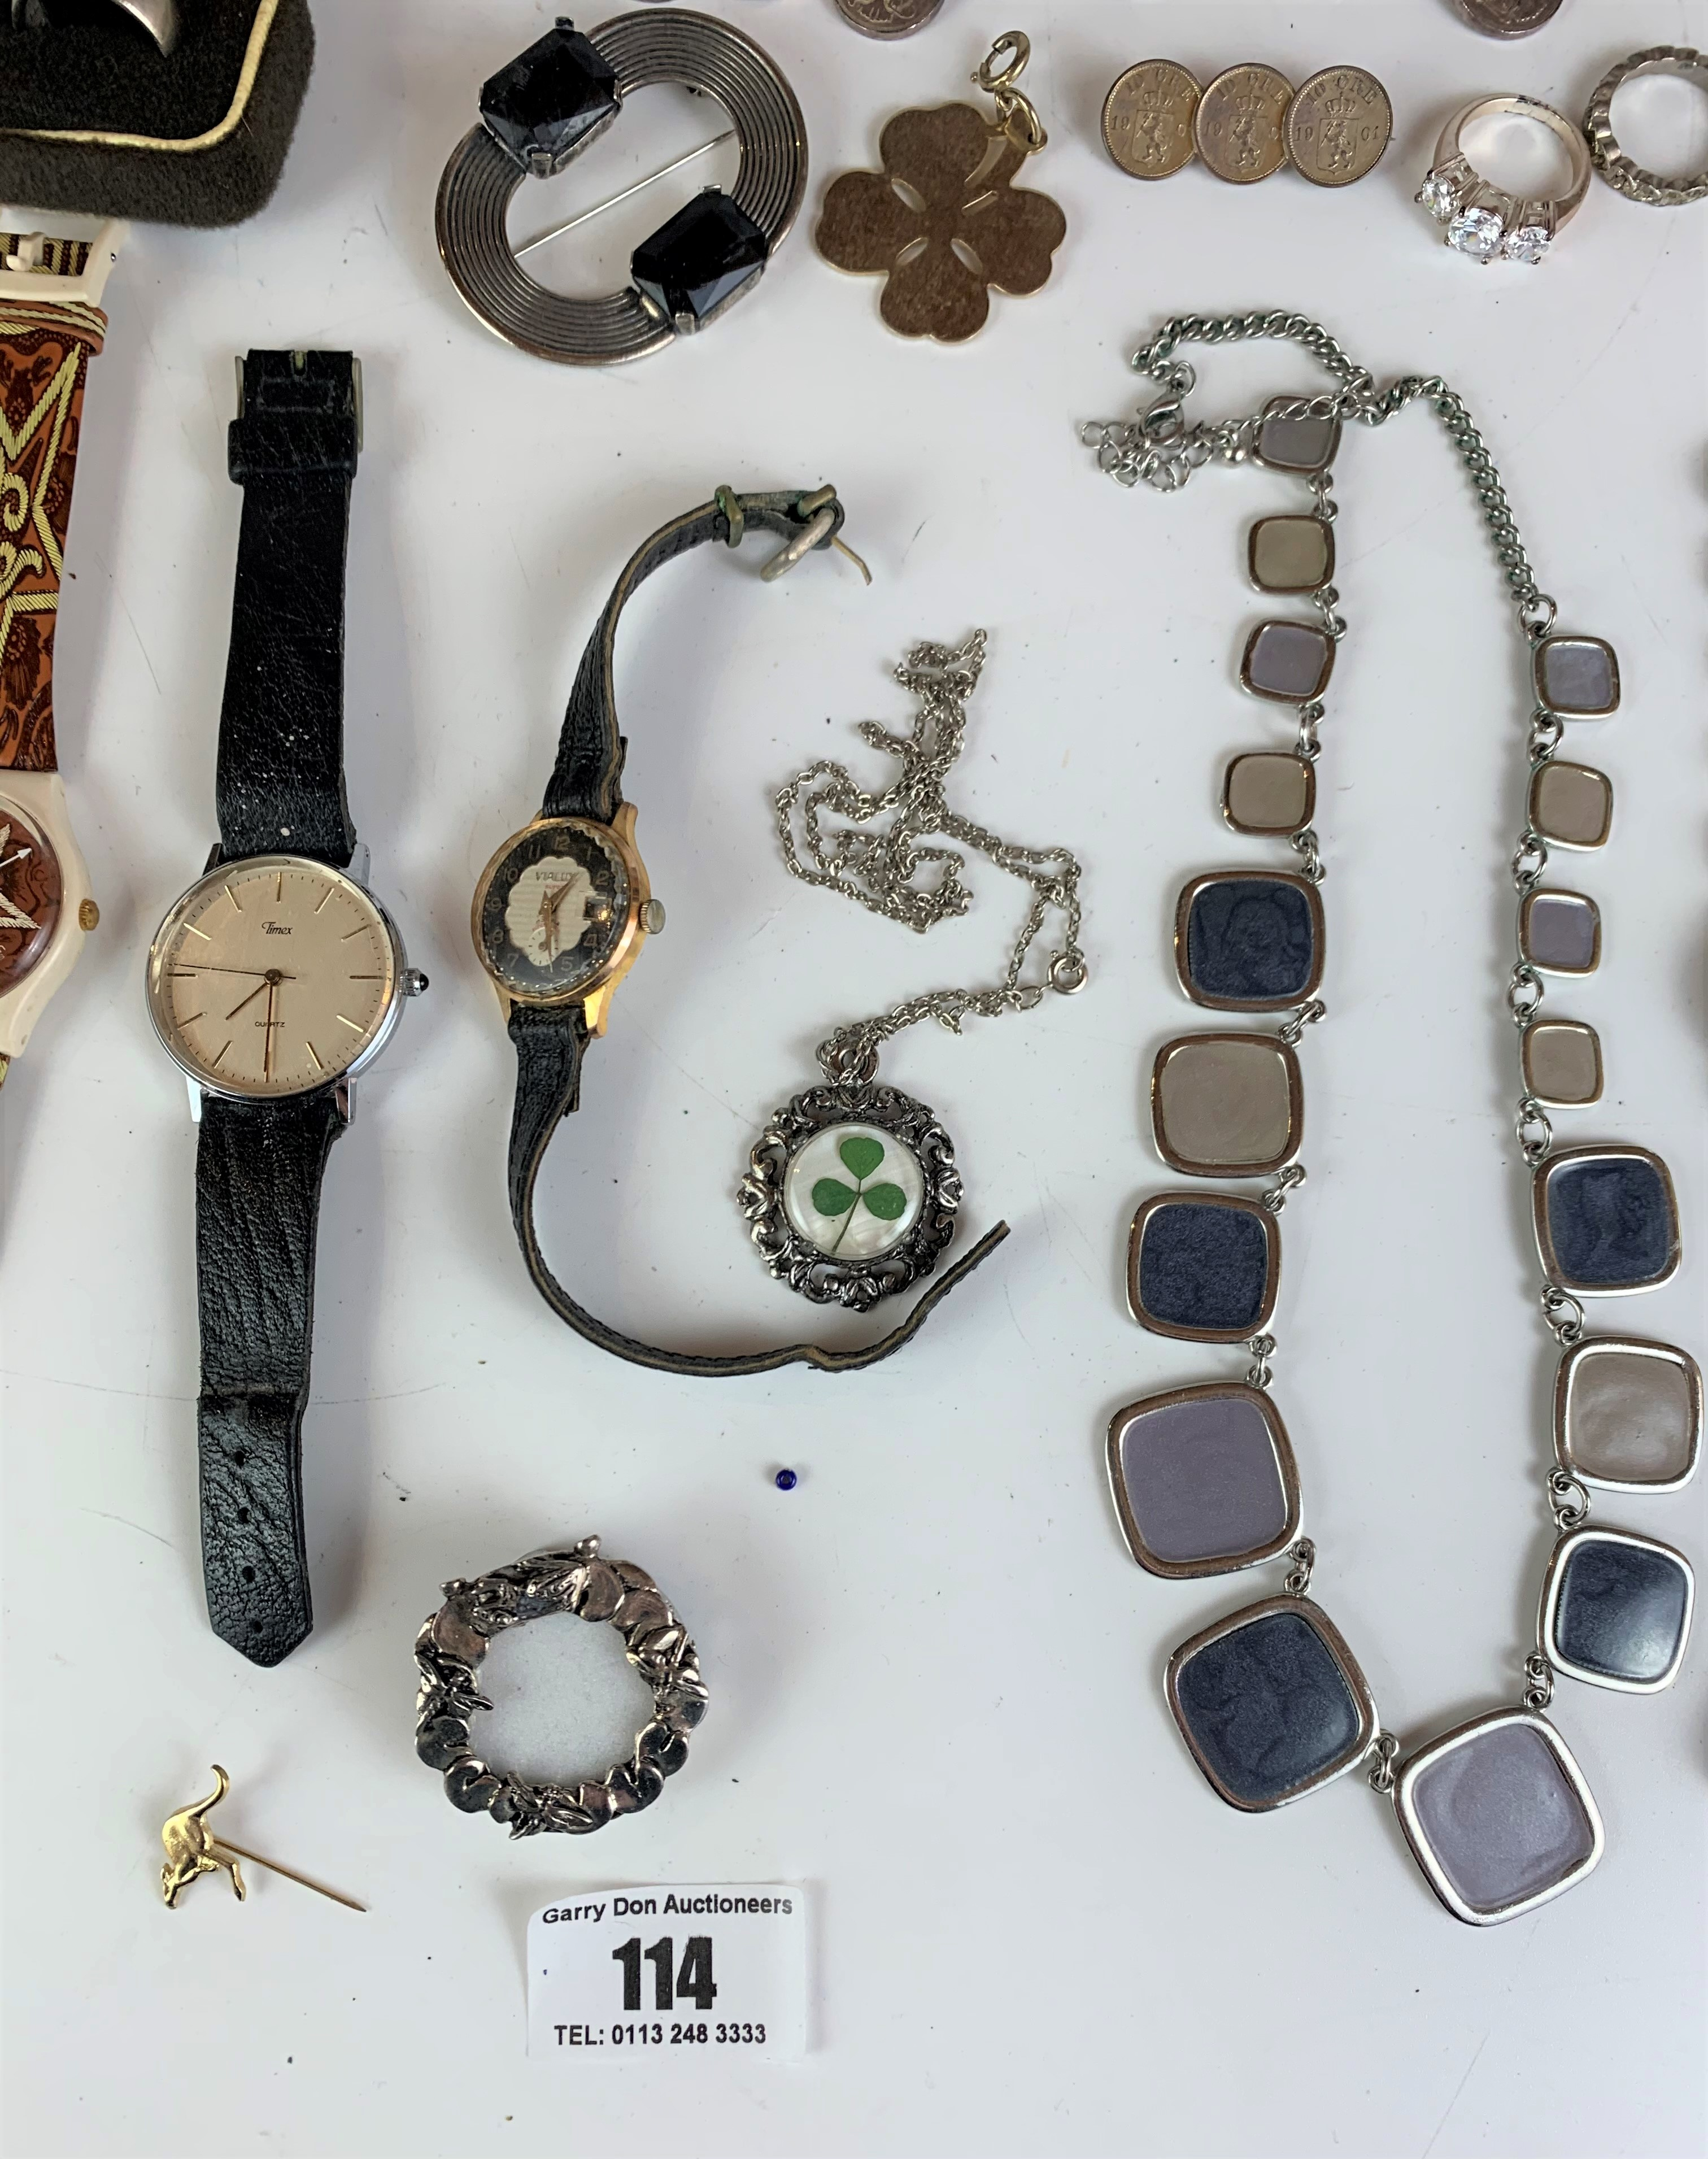 Large bag of assorted dress jewellery including watches, necklaces, bracelets, brooches etc. - Image 6 of 10